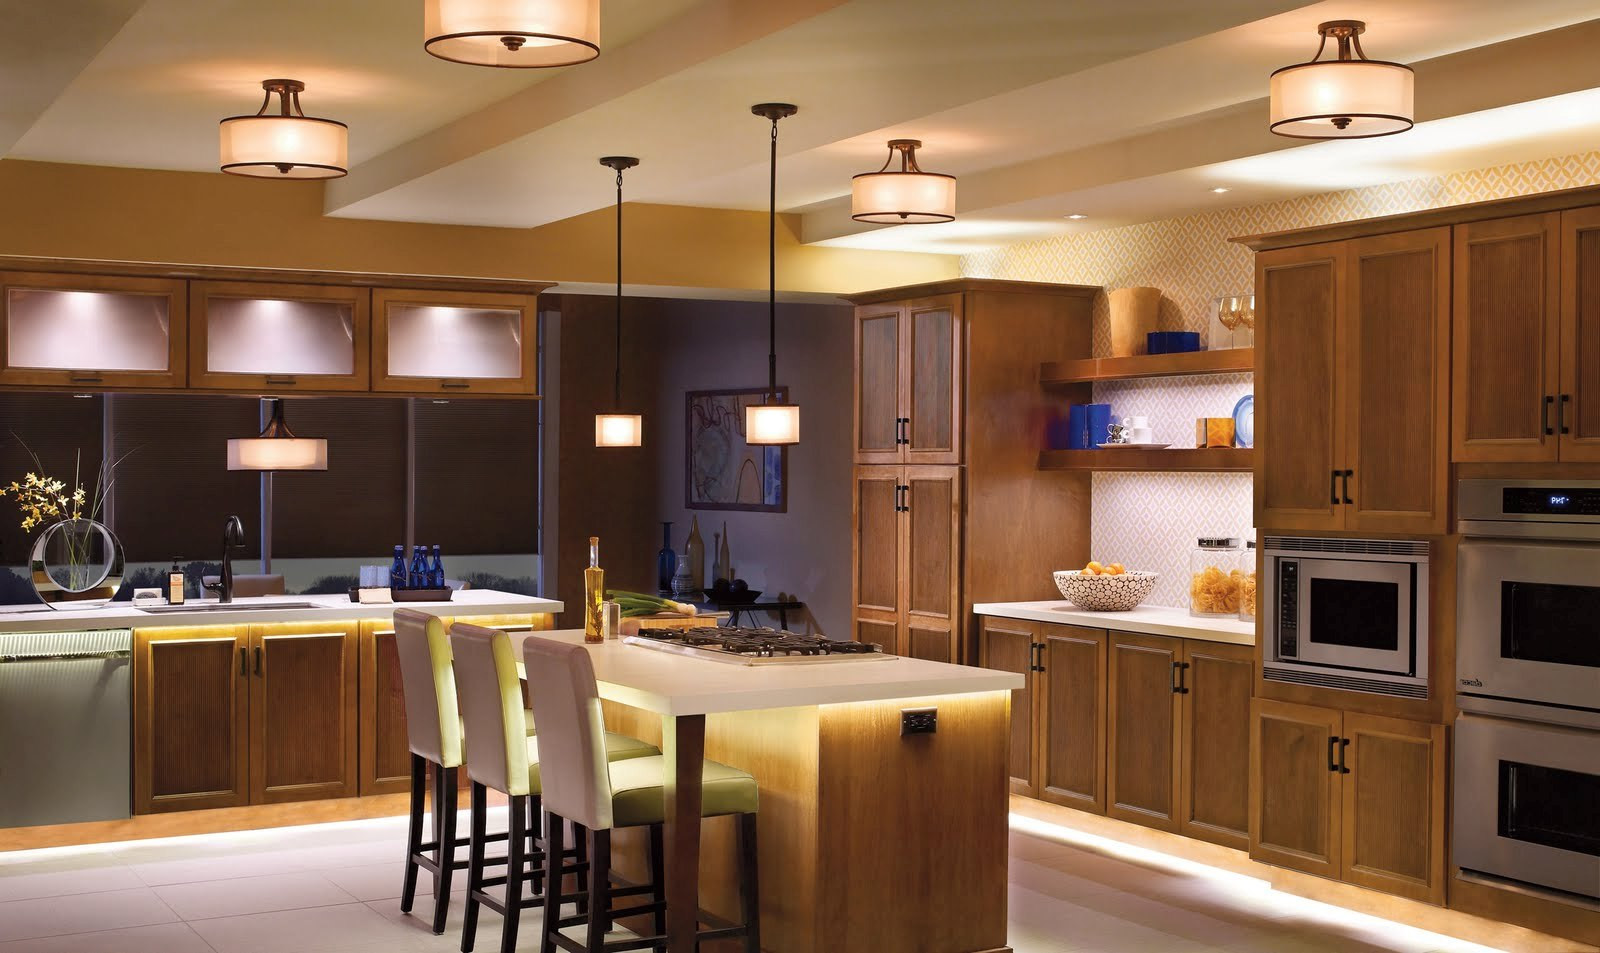 Best ideas about Ceiling Lights For Kitchen . Save or Pin Kitchen Ceiling Light The Best Way To Brighten Your Now.